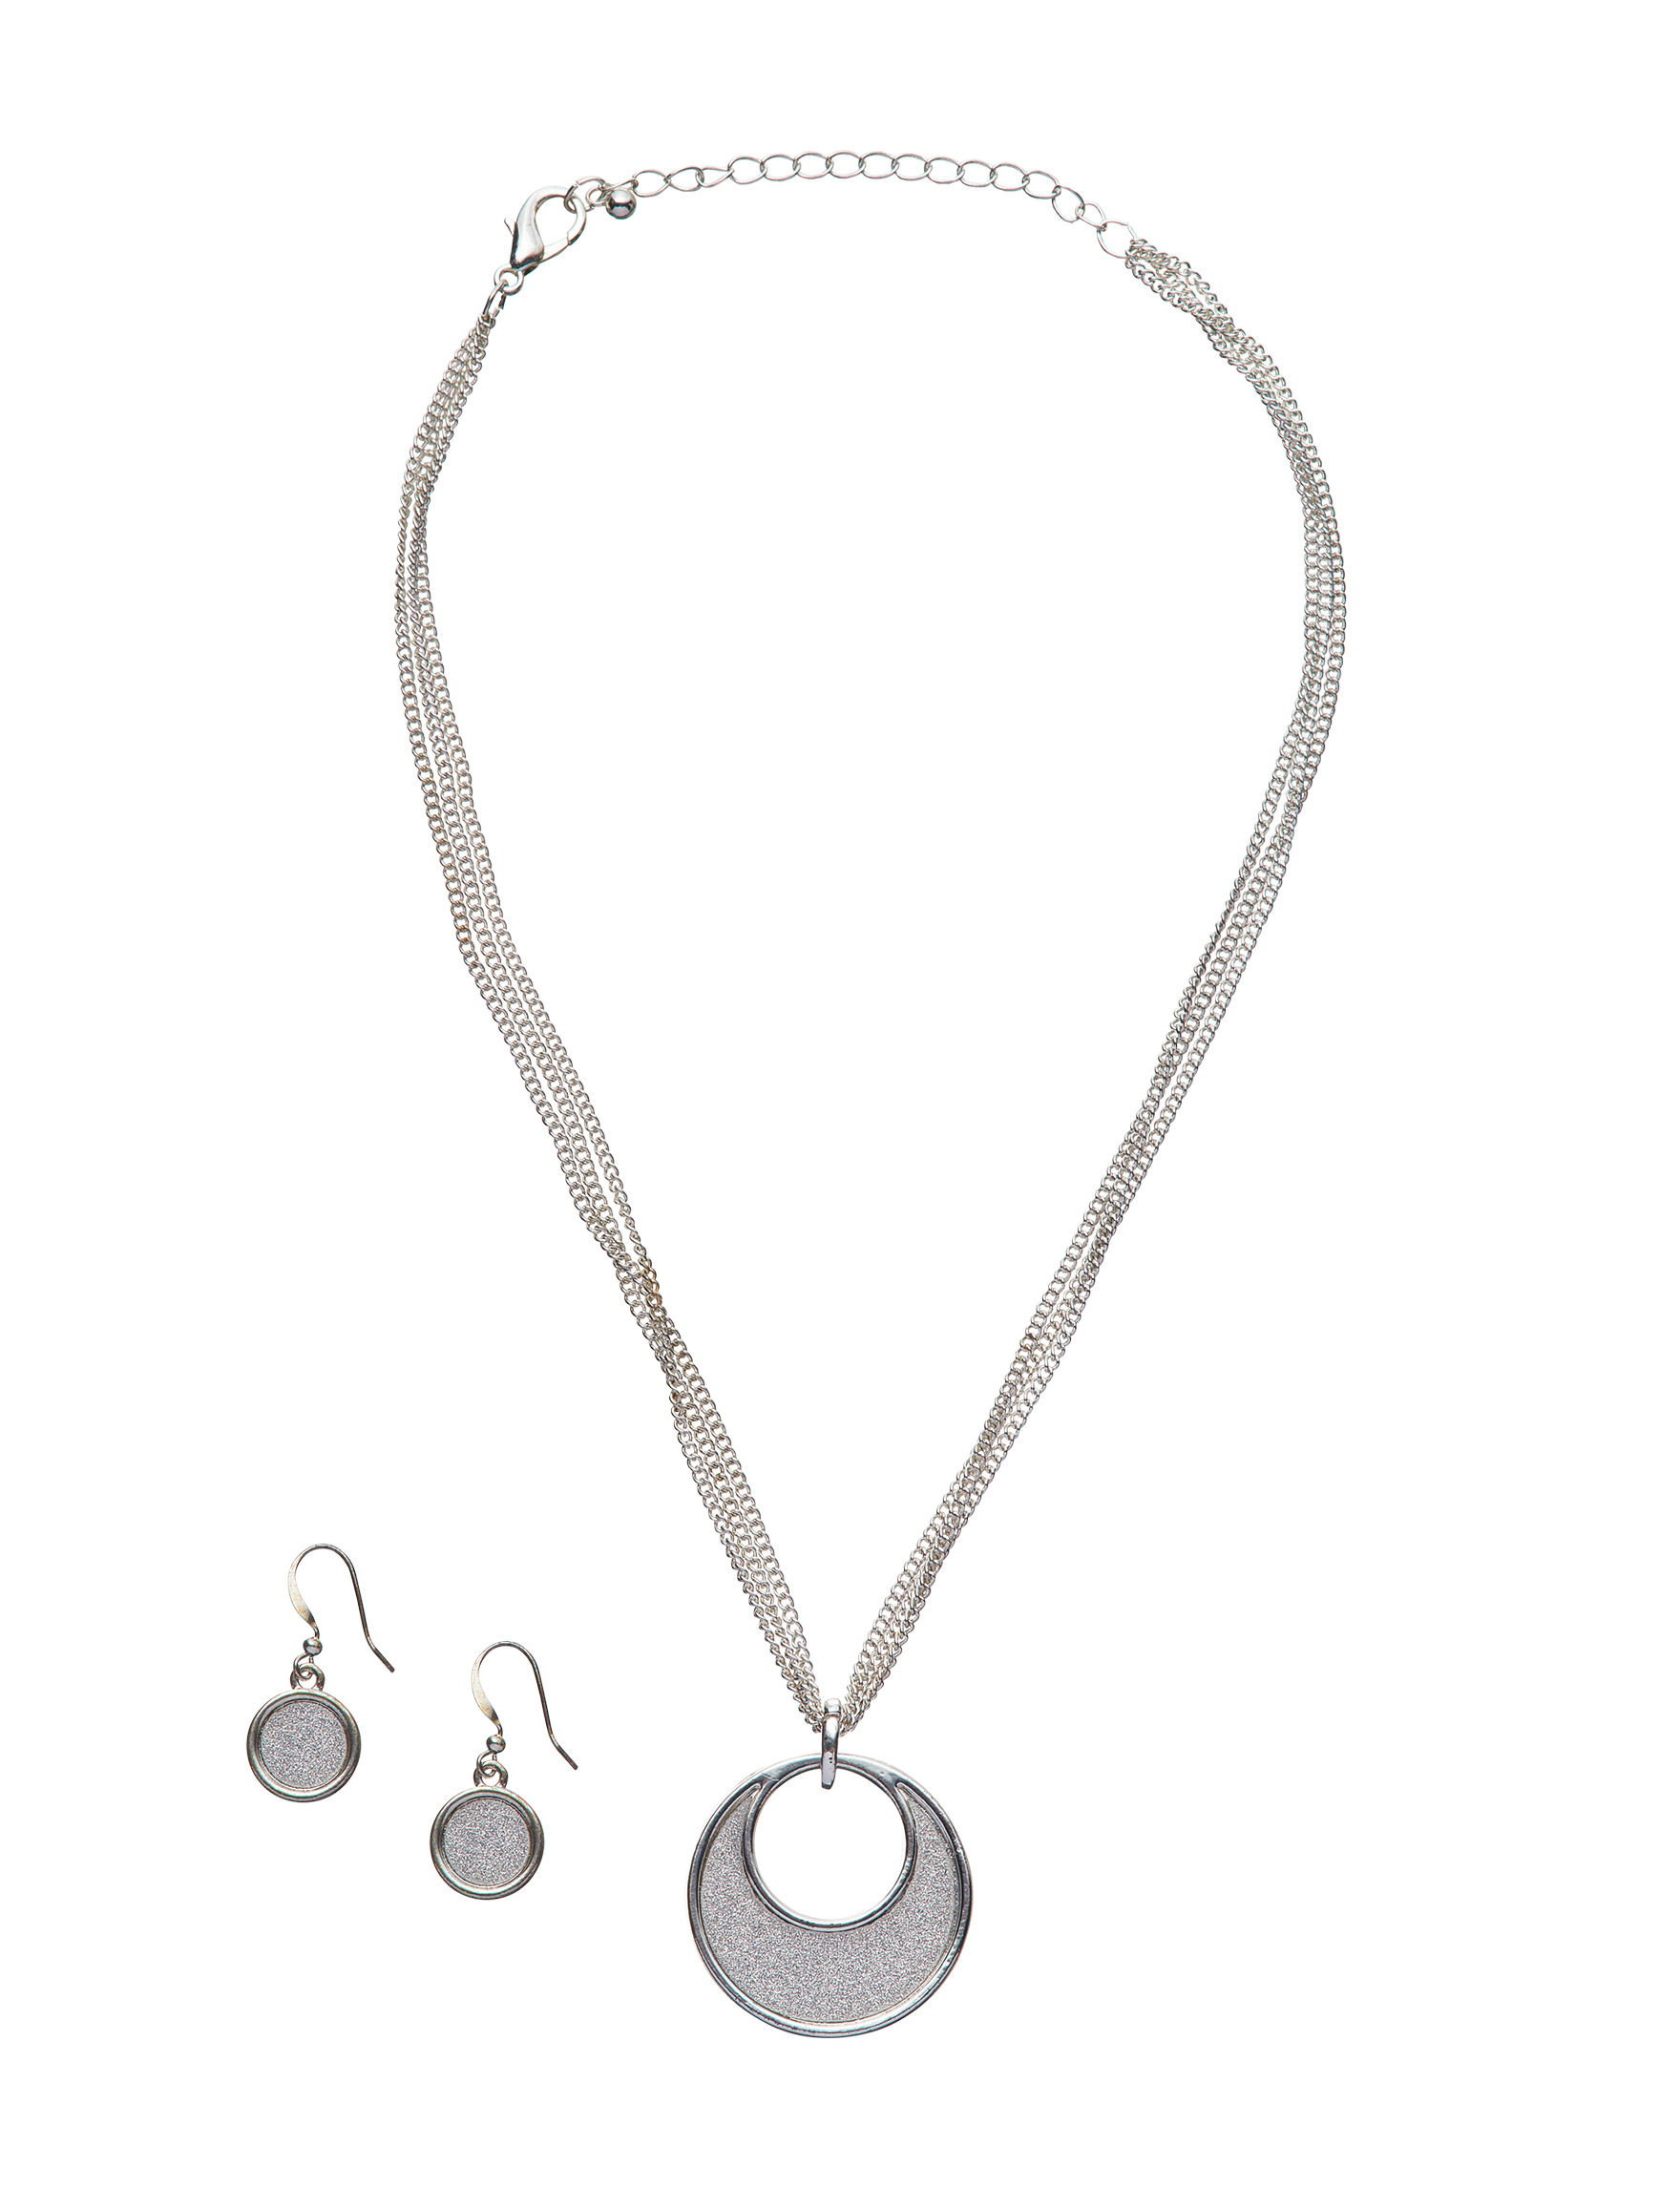 Tanya Silver Drops Earrings Jewelry Sets Necklaces & Pendants Fashion Jewelry